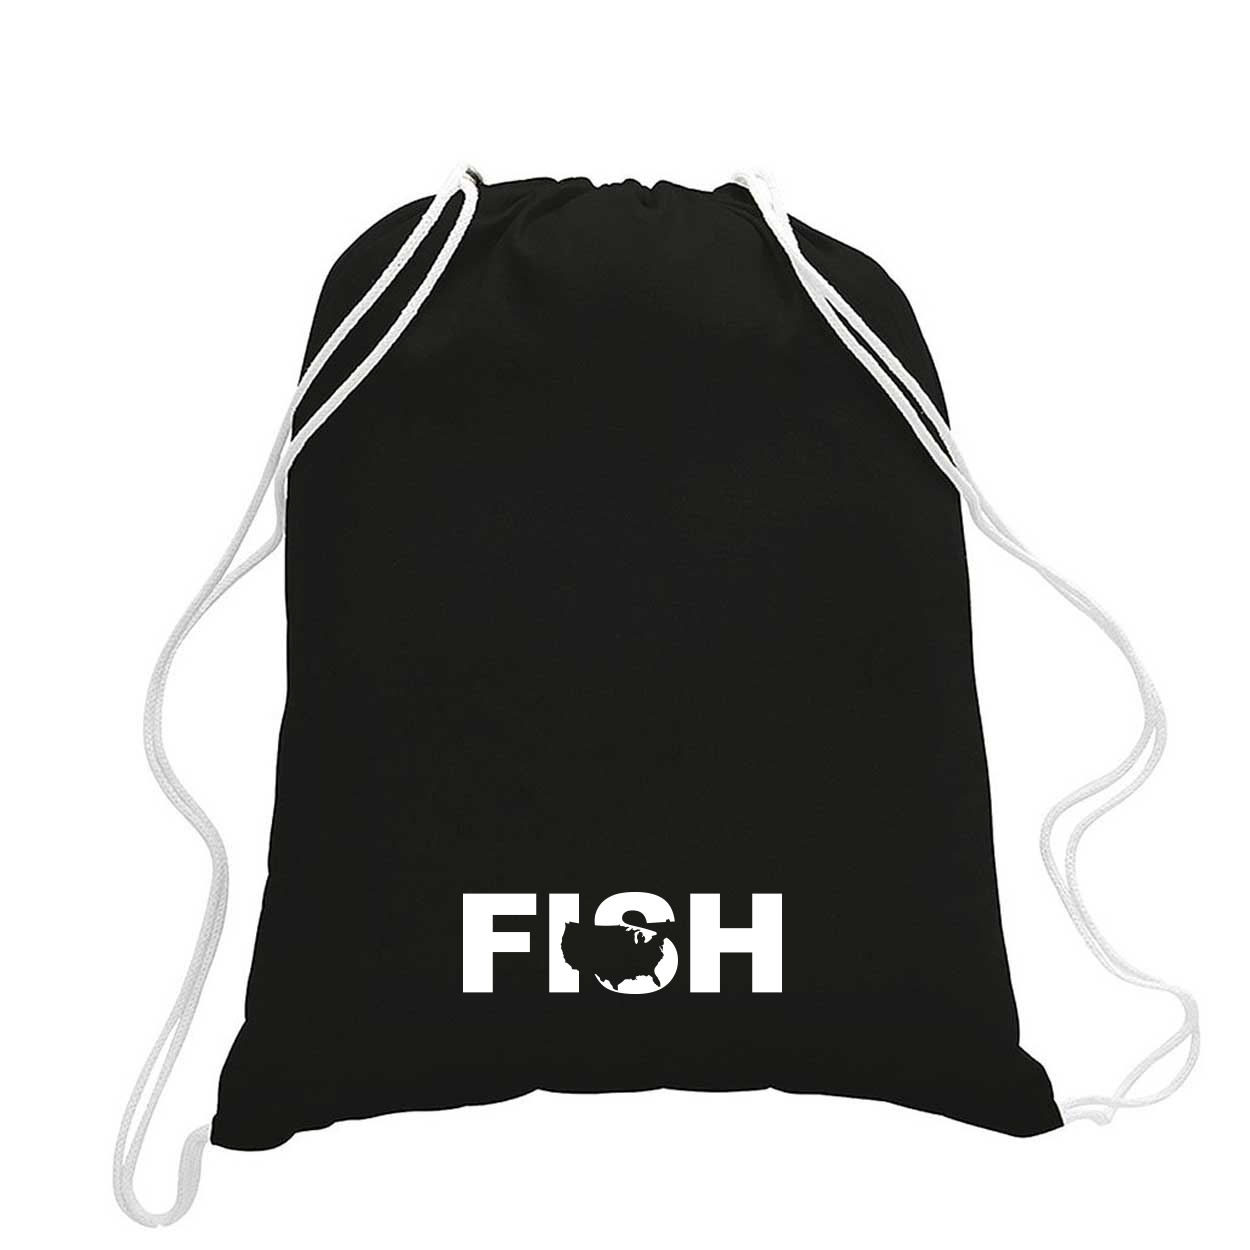 Fish United States Classic Drawstring Sport Pack Bag/Cinch Sack Black (White Logo)